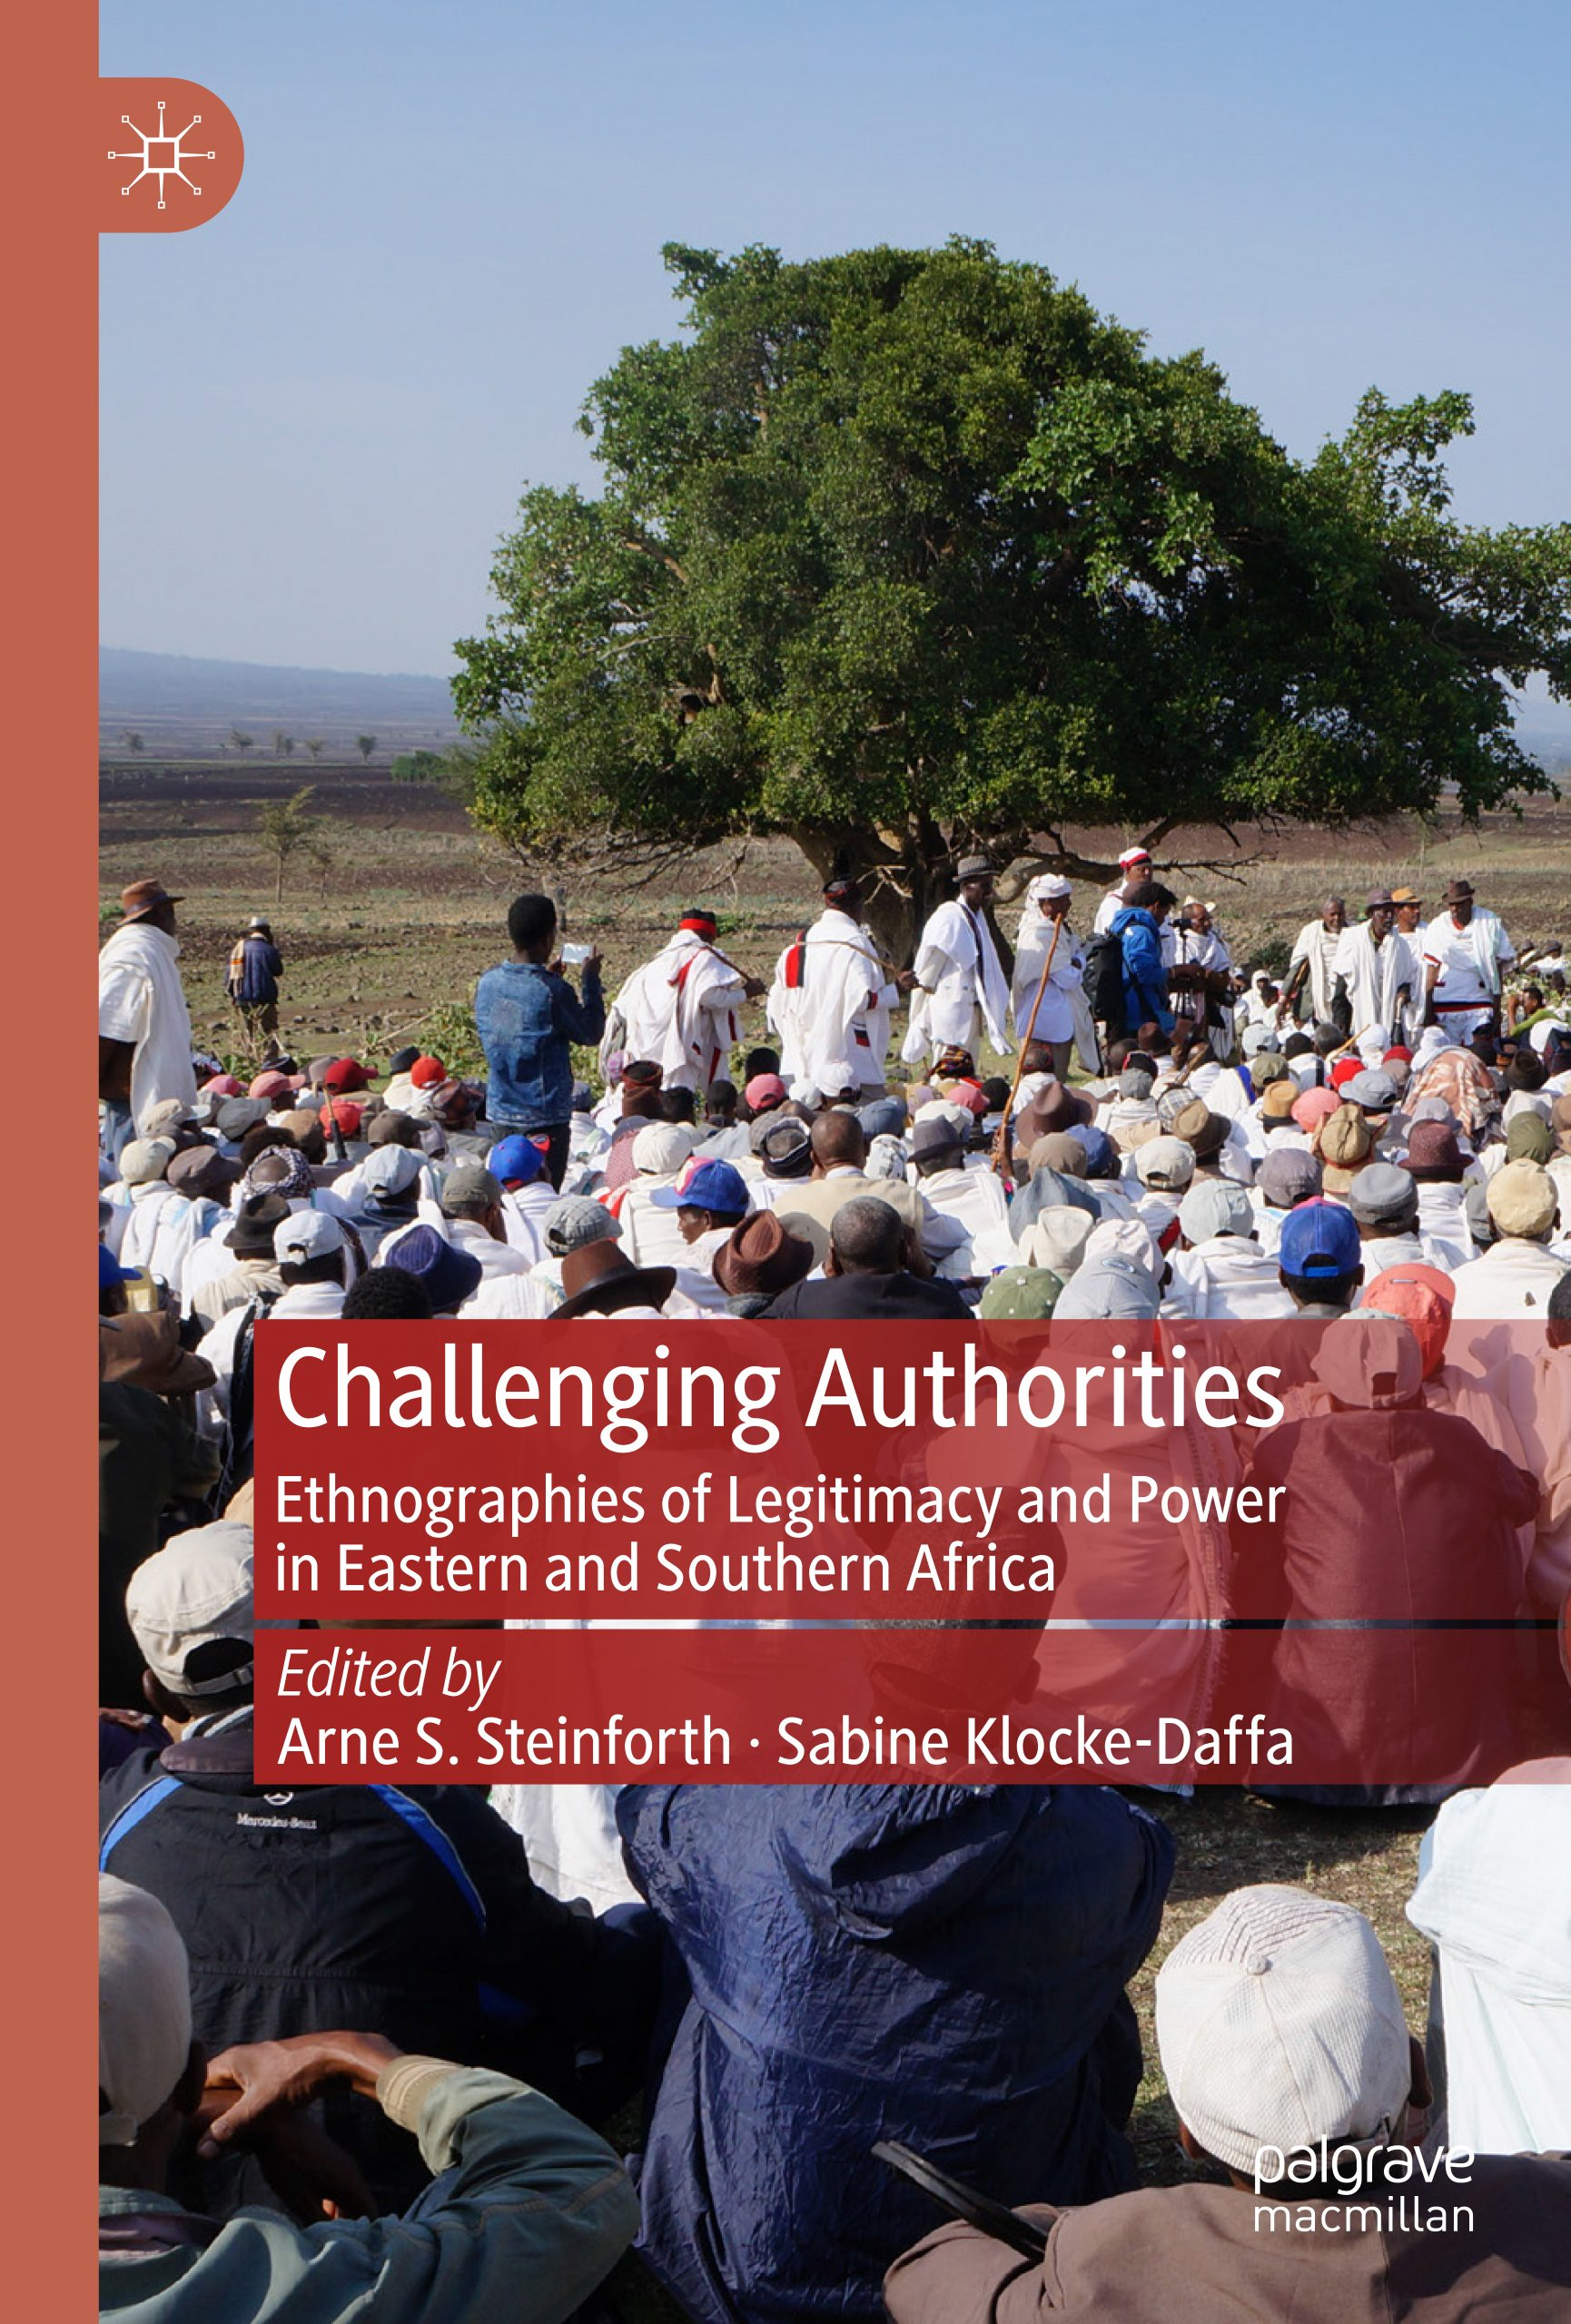 New Book Publication: Dr. Arne Steinforth - Challenging Authorities: Ethnographies of Legitimacy and Power in Eastern and Southern Africa Book Cover